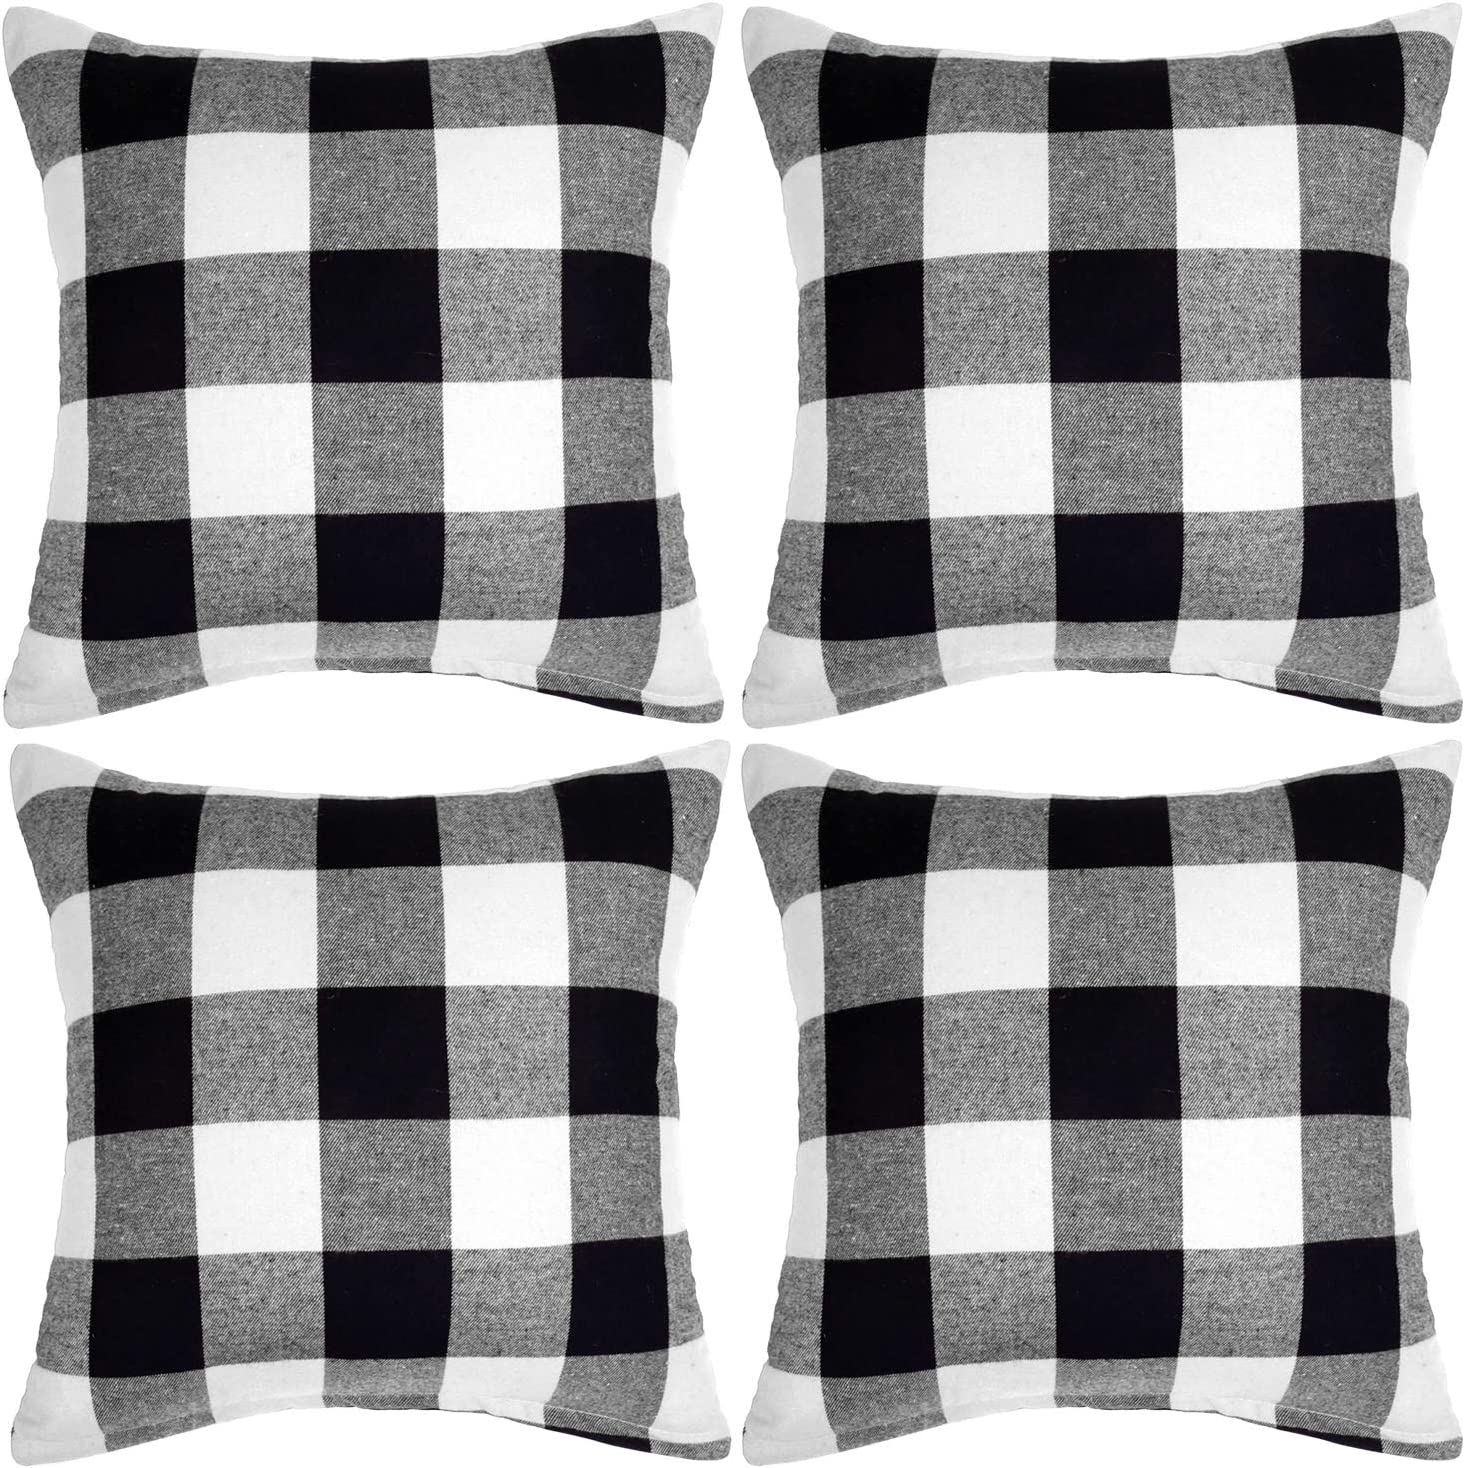 Aneco 4 Pack Buffalo Plaid Pillow Covers White and Black Plaid Cushion Case Pillow Cases for Home Decor, 18 x 18 Inches